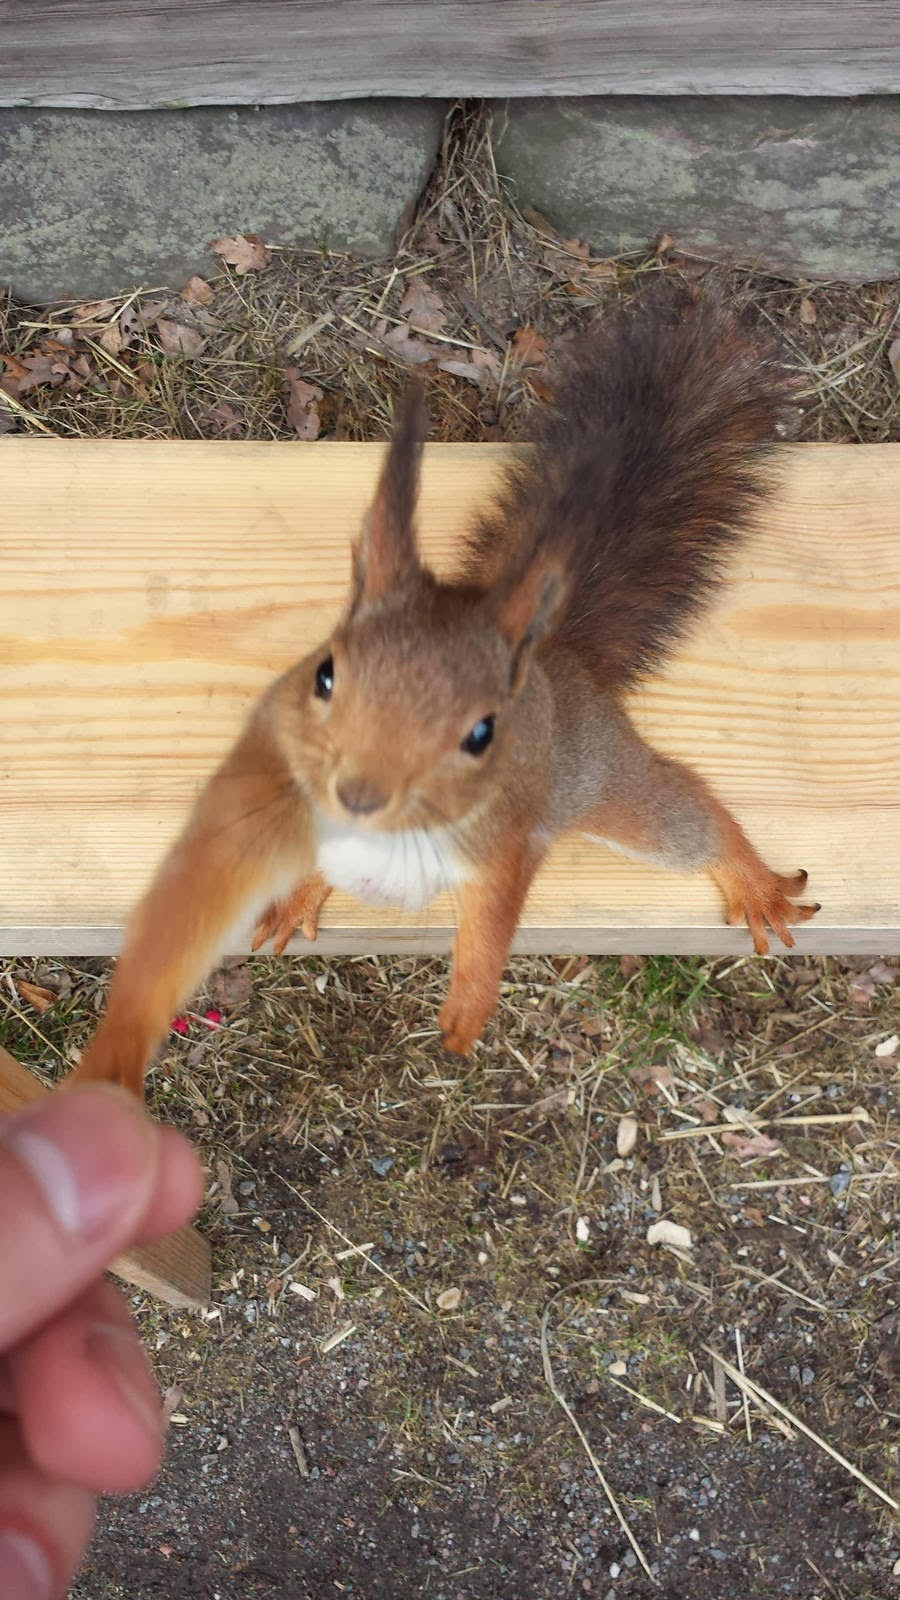 Funny animals of the week - 28 February 2014 (40 pics), squirrel handshakes human